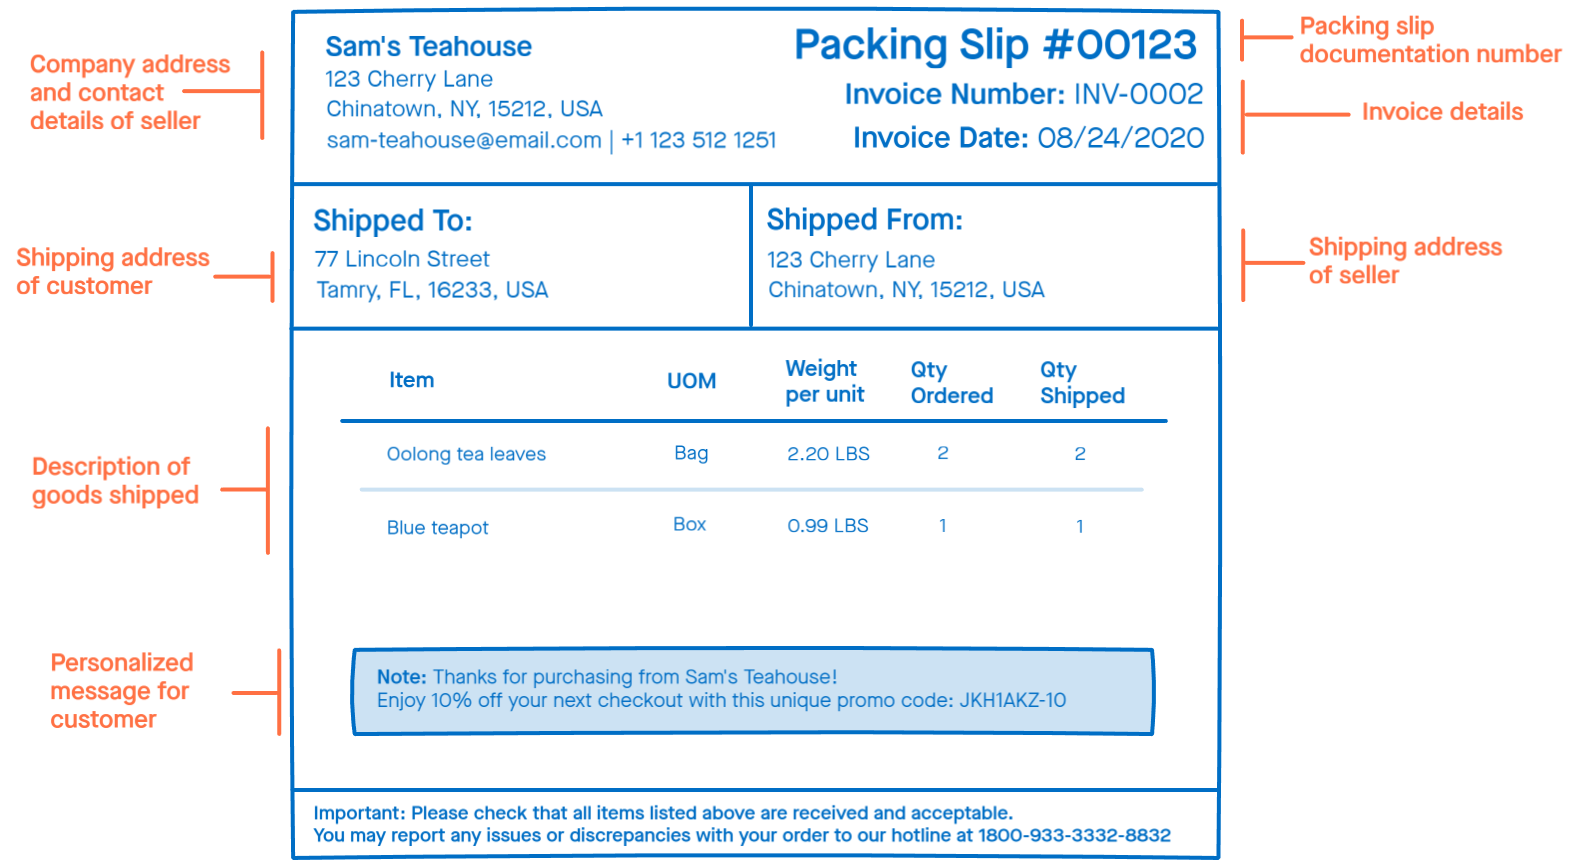 The packing slip is often placed inside the parcel alongside products, and is used as a checklist by the customer to confirm that everything is shipped correctly.